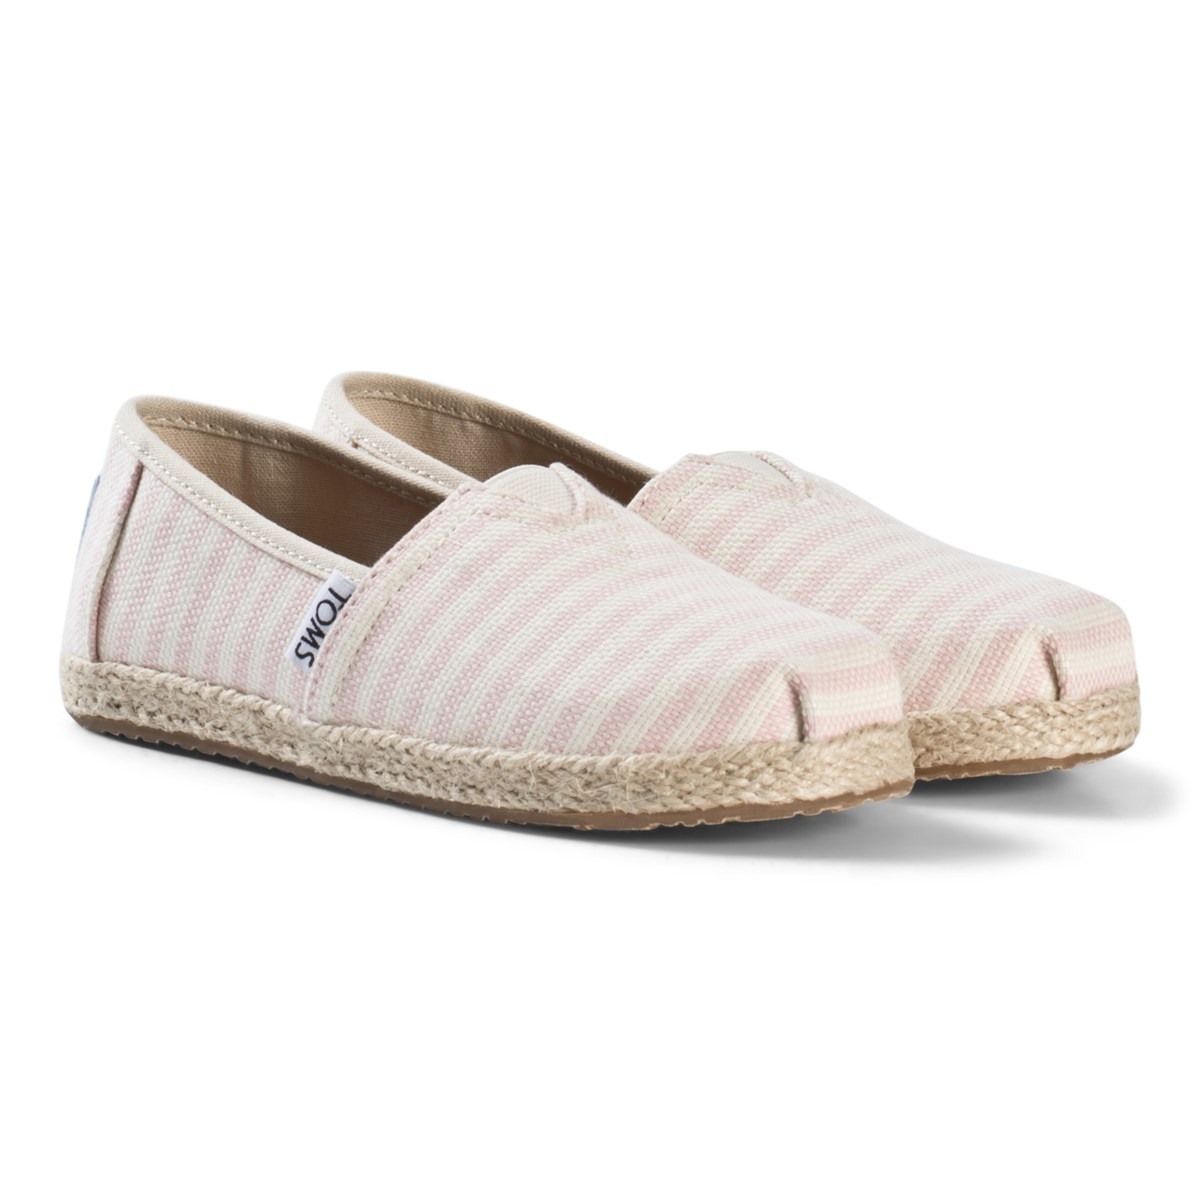 Toms Blossom Woven Stripe Youth Classics with Rope Sole